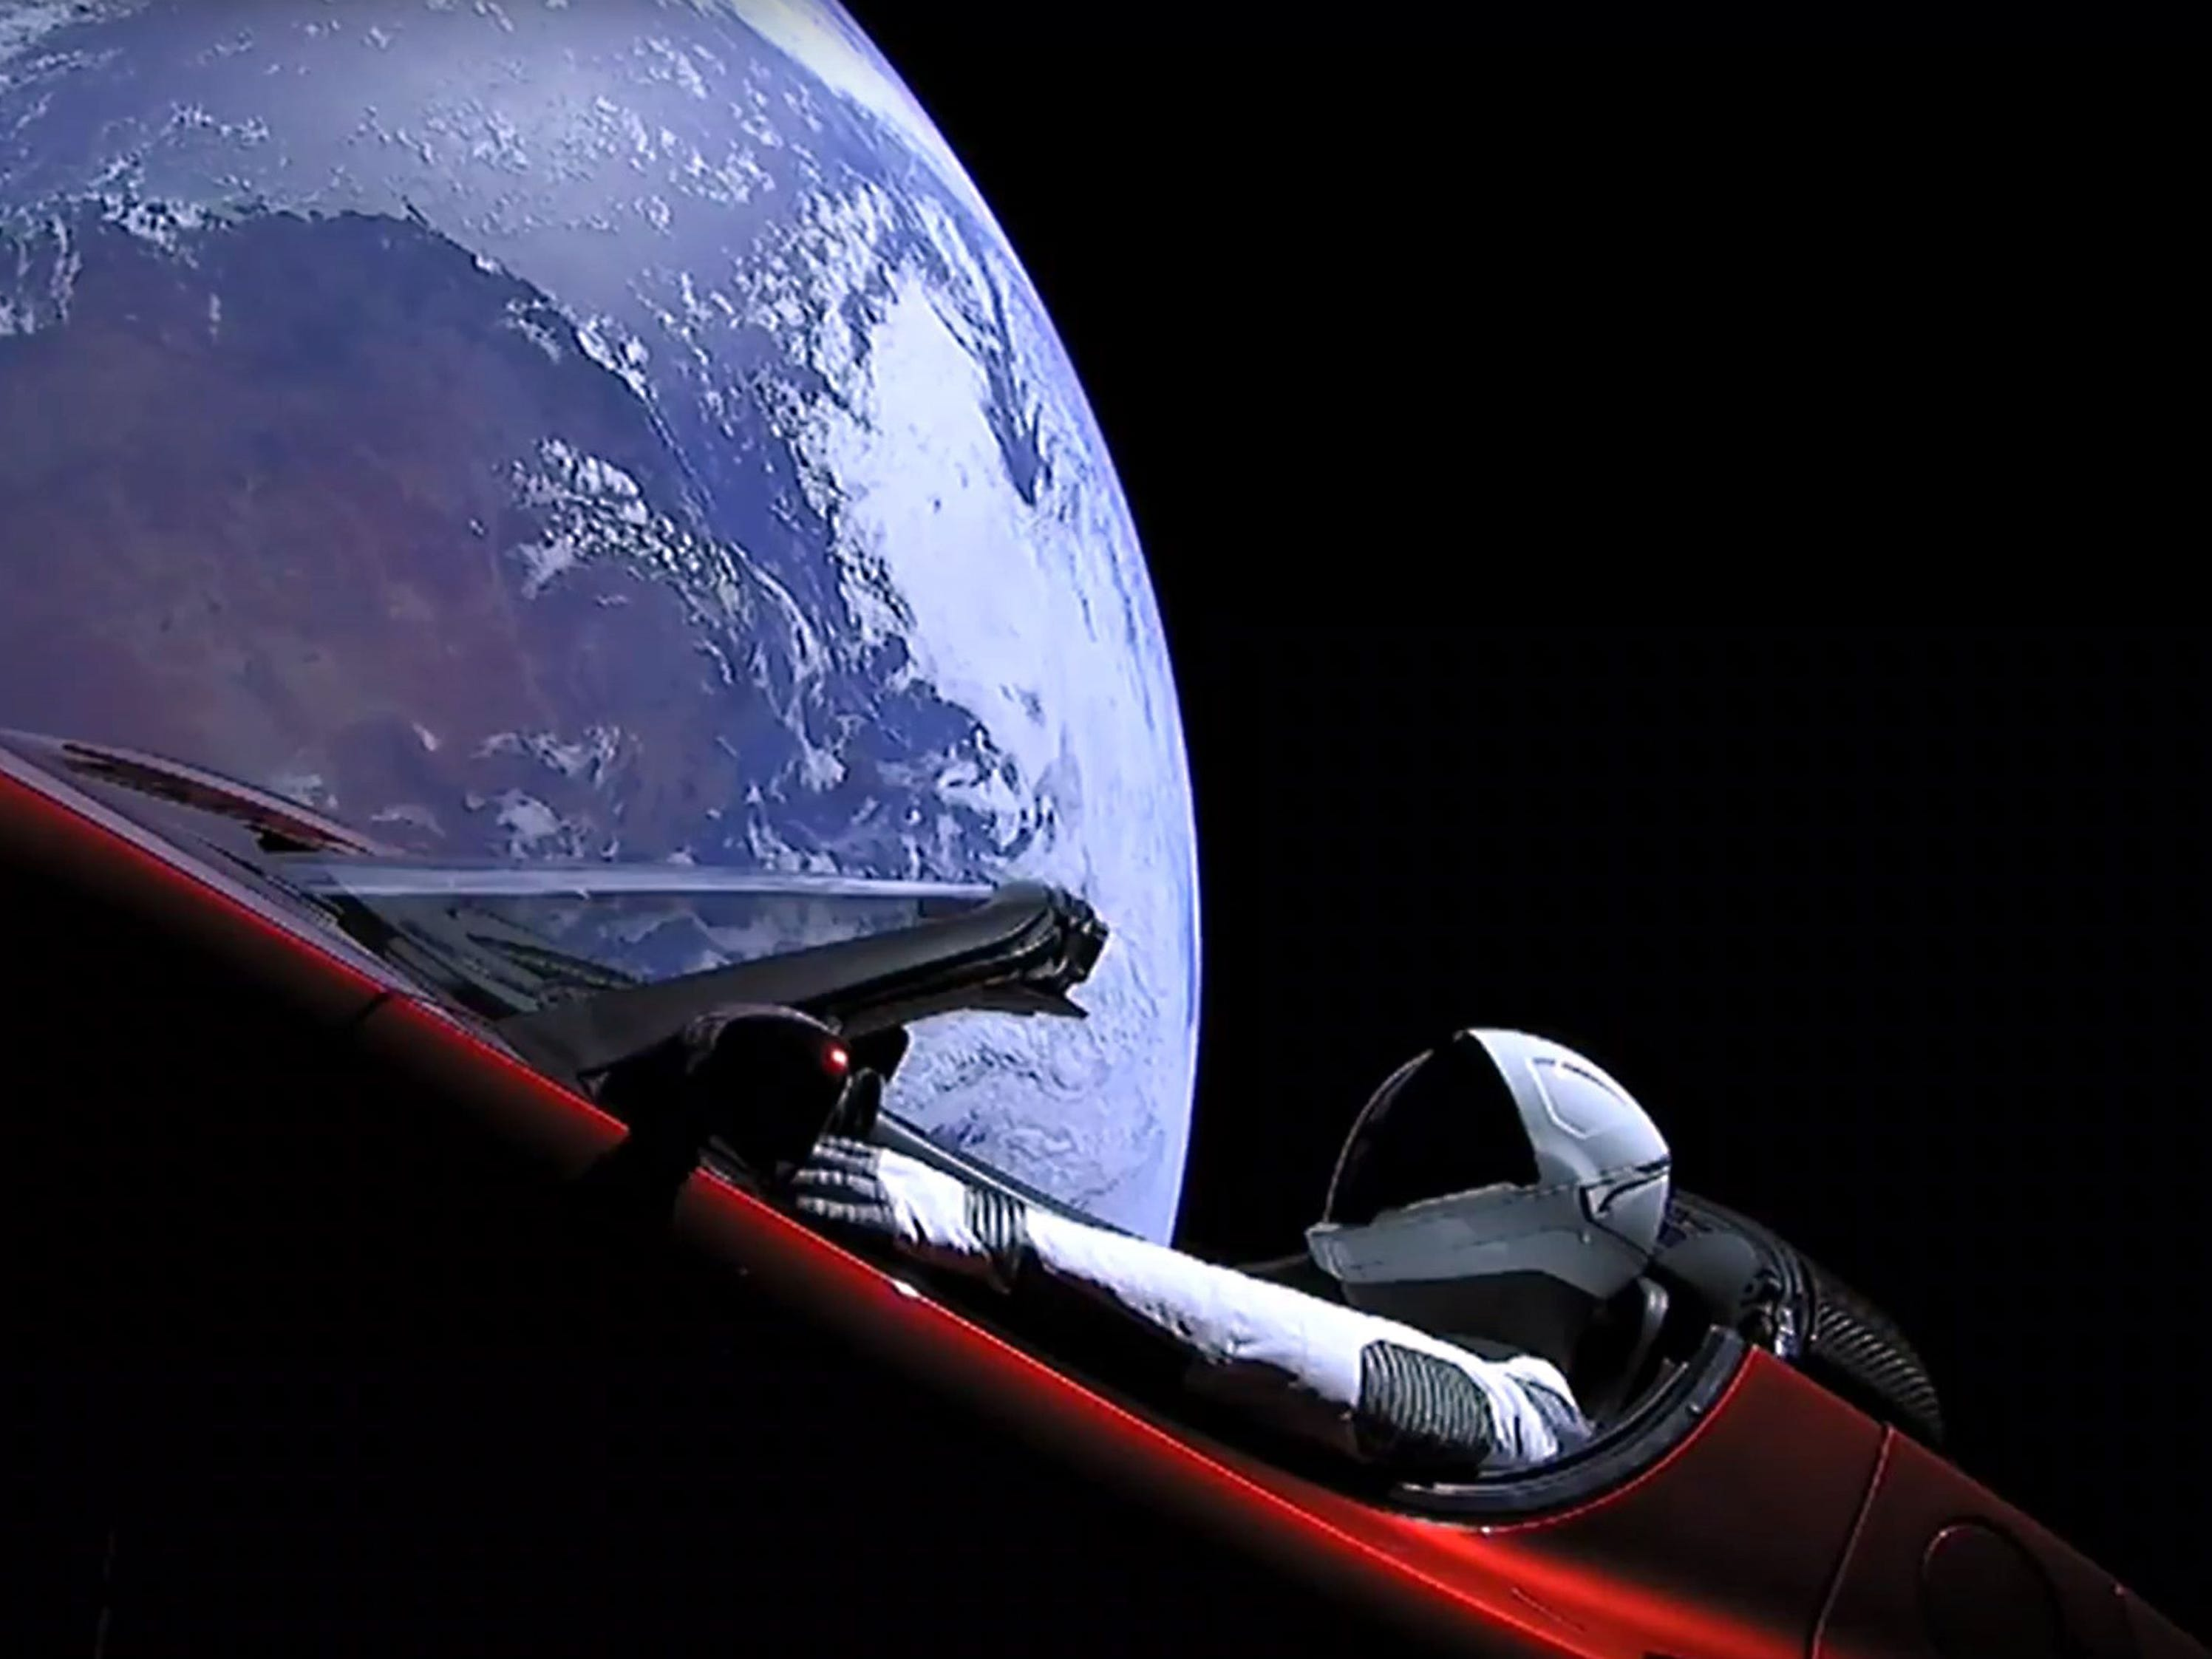 """""""Starman"""" sitting in SpaceX CEO Elon Musk's cherry red Tesla roadster after a Falcon Heavy rocket delivered it into orbit around the Earth on Feb. 6, 2018."""